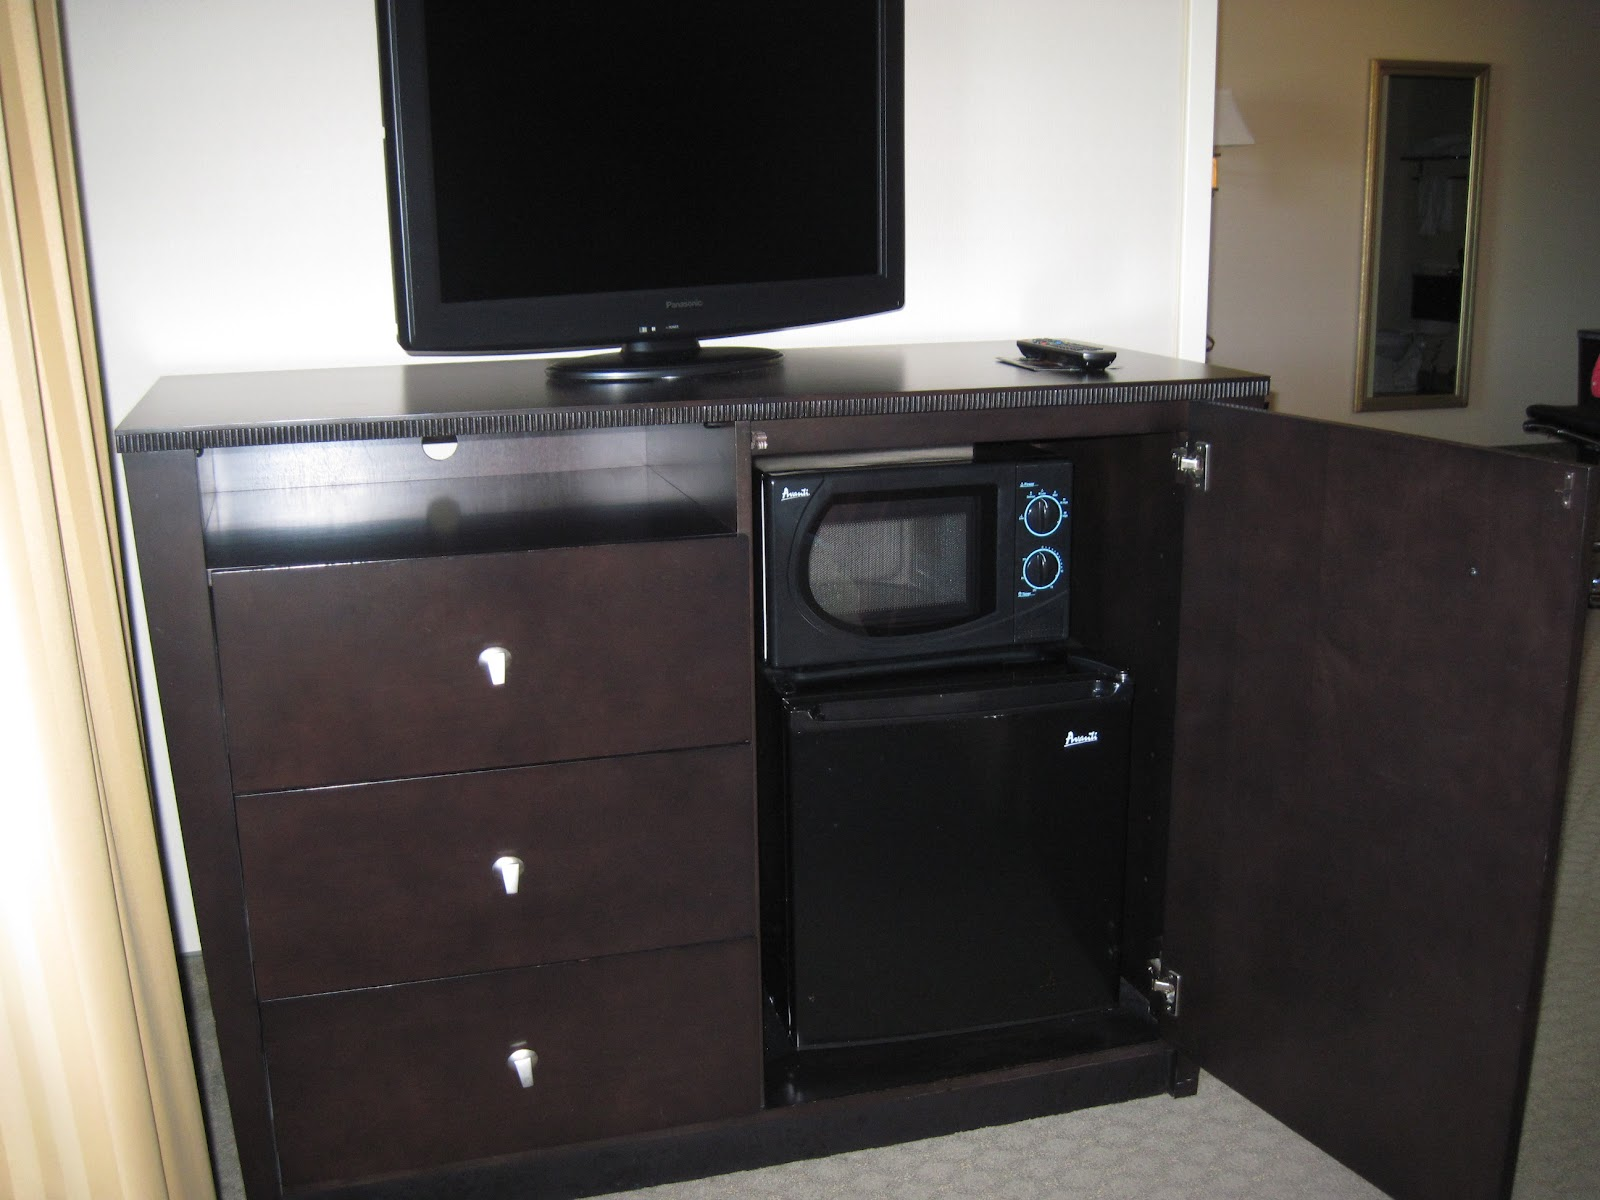 Hotel Mini Fridge and Microwave Cabinet